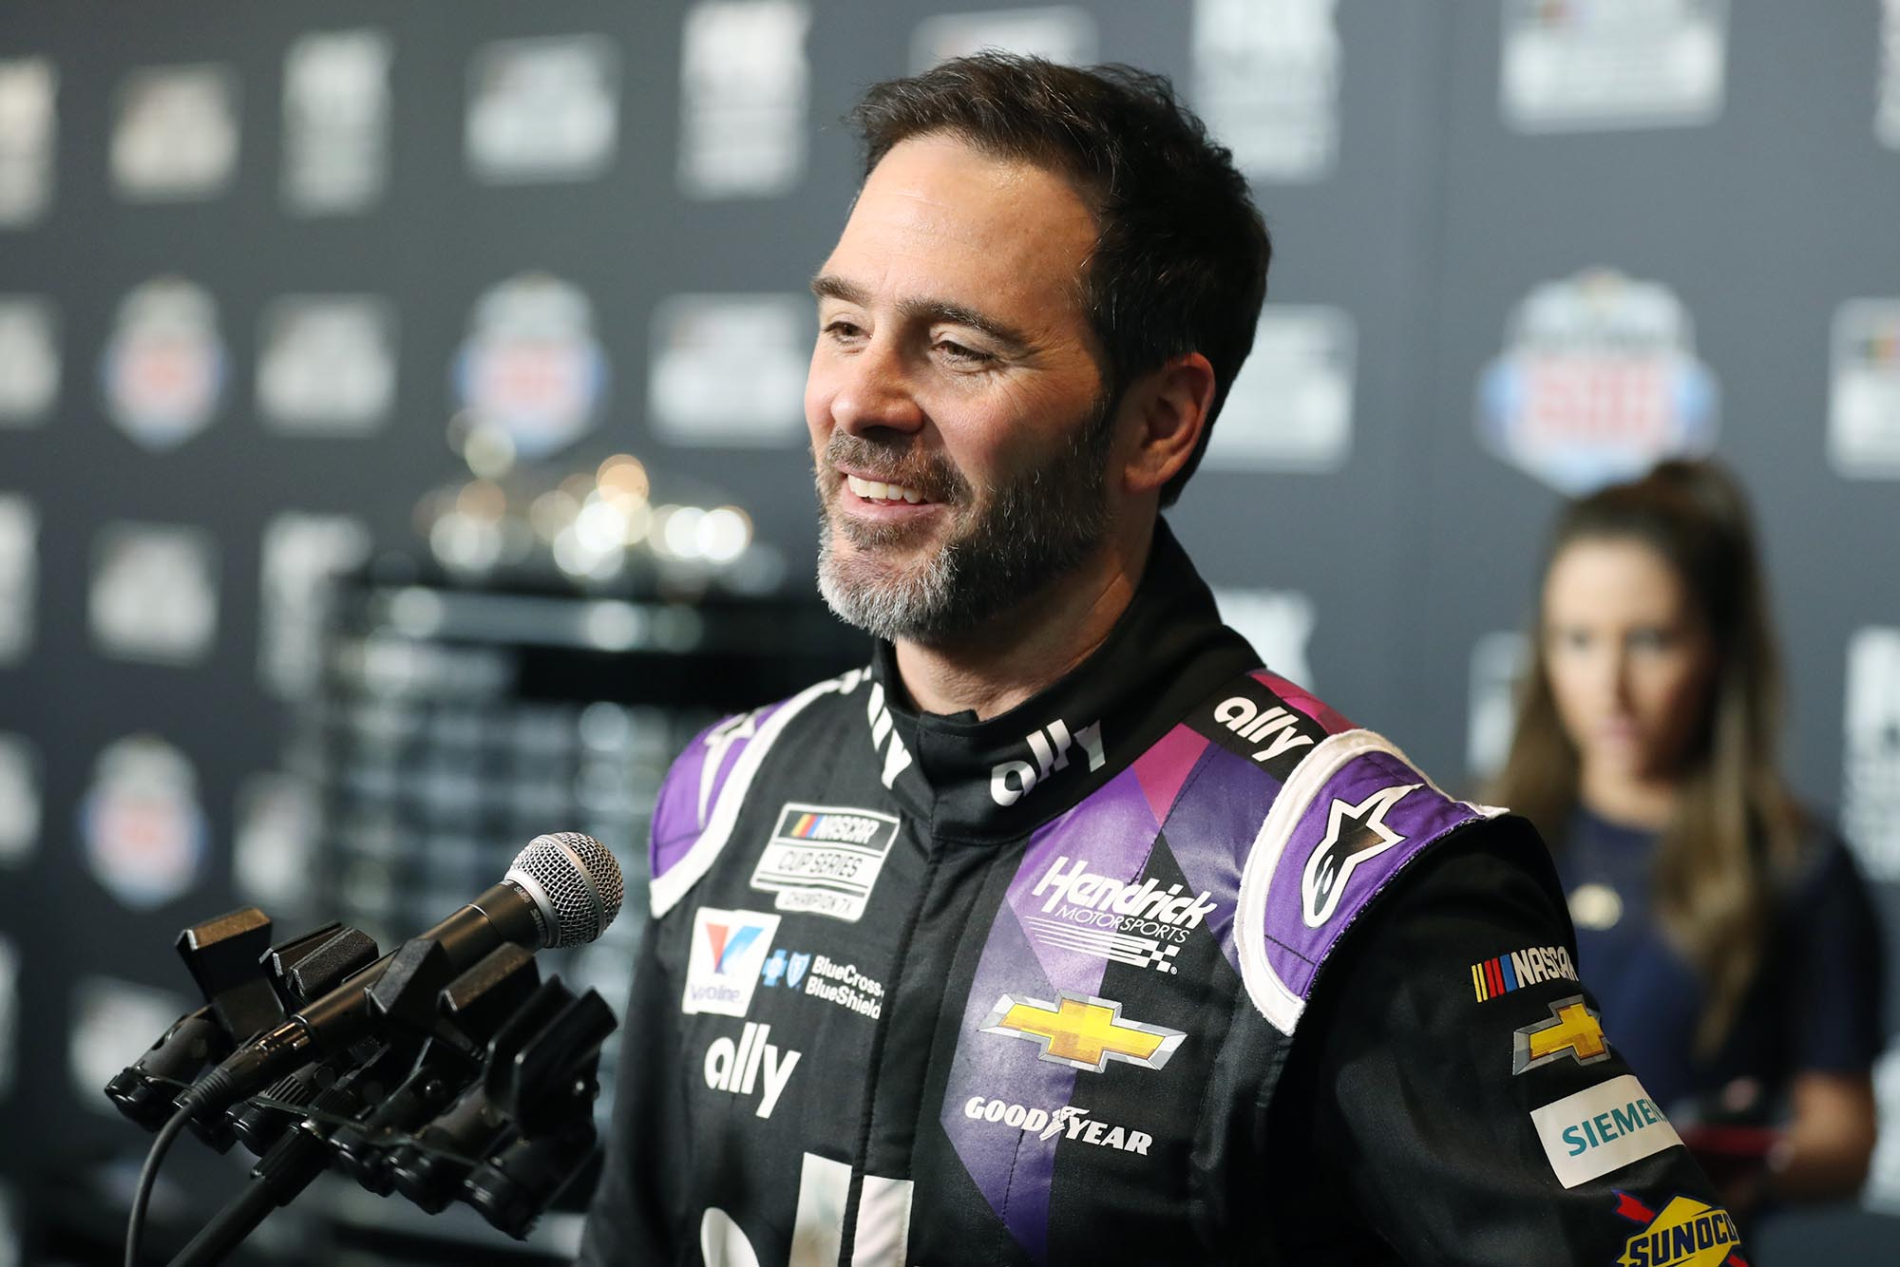 Jimmie Johnson has had a legendary NASCAR Cup Series career. He just recently got honored for it in a pretty cool way too.